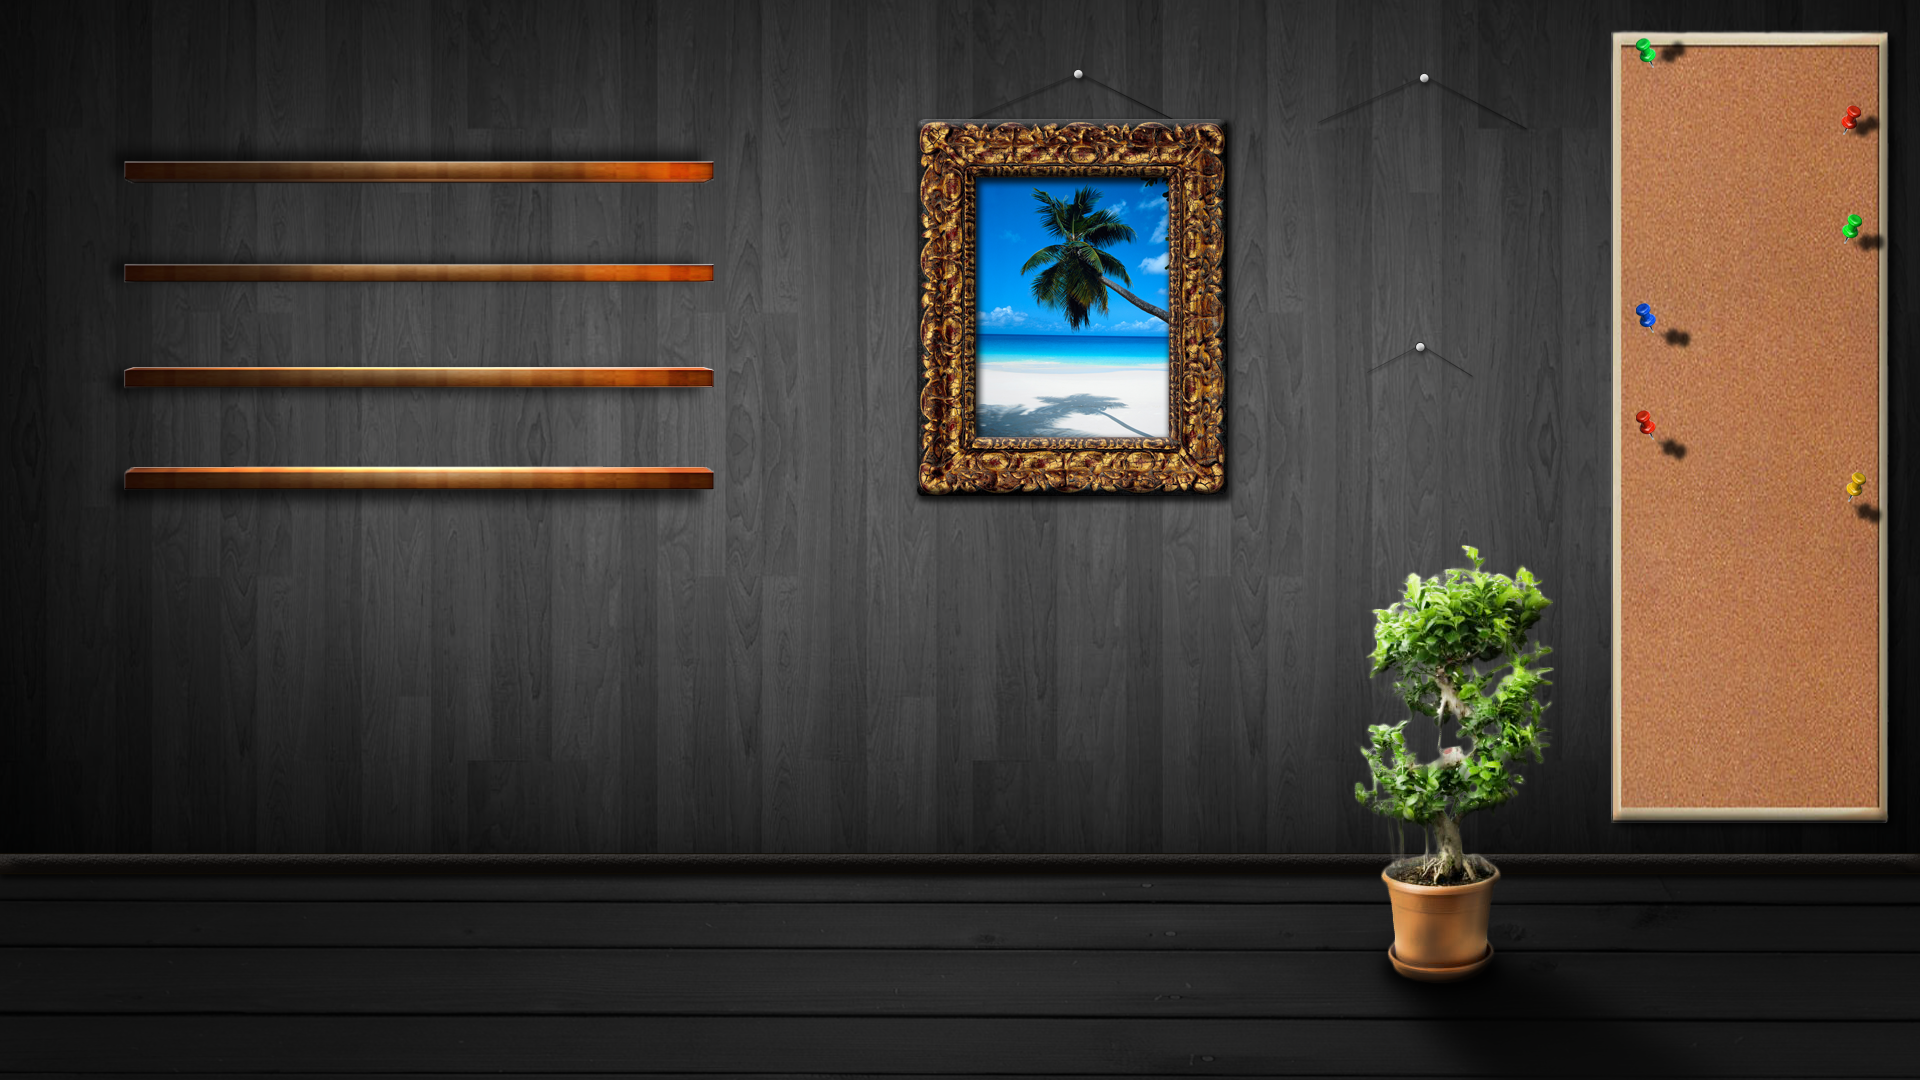 wooden room wallpaper by chiefwrigley customization wallpaper other 1920x1080